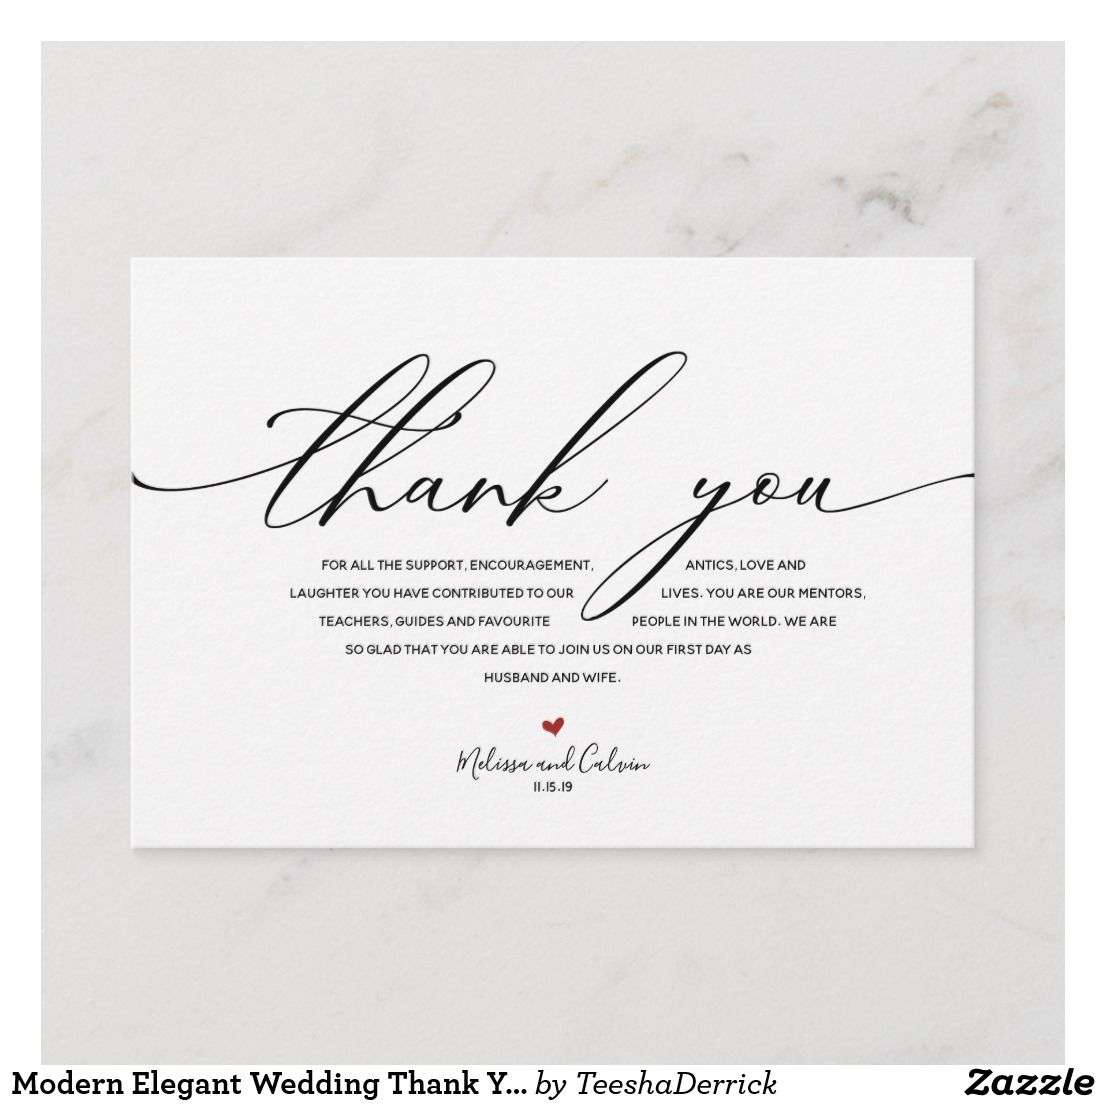 Modern Elegant Wedding Thank You Card